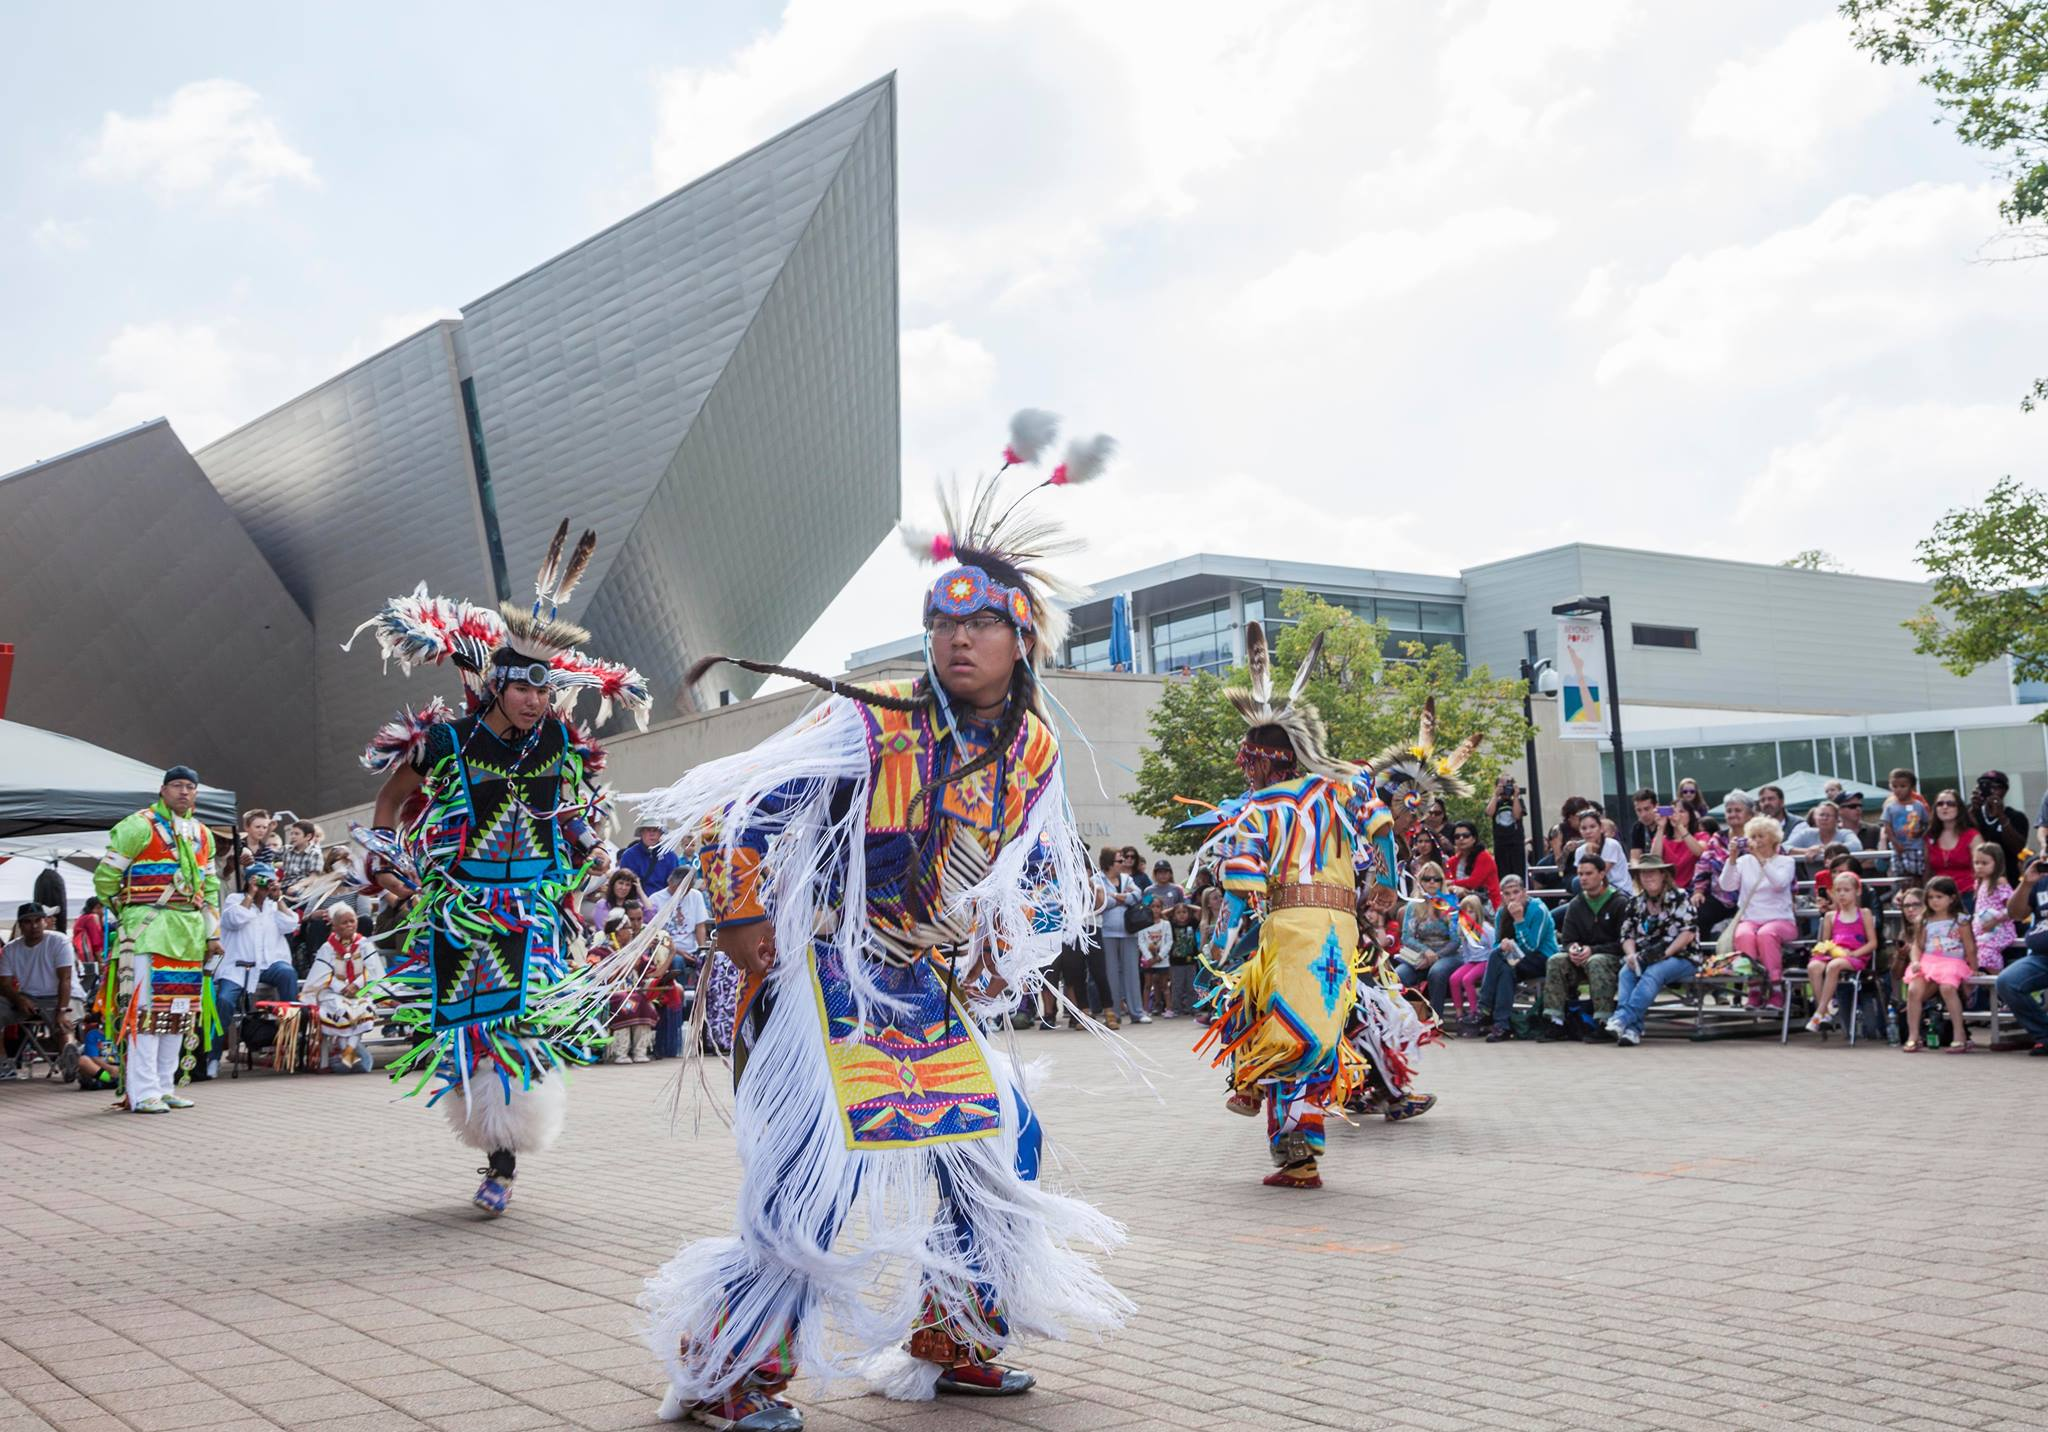 Denver Art Museum maintains strong commitment to Native art